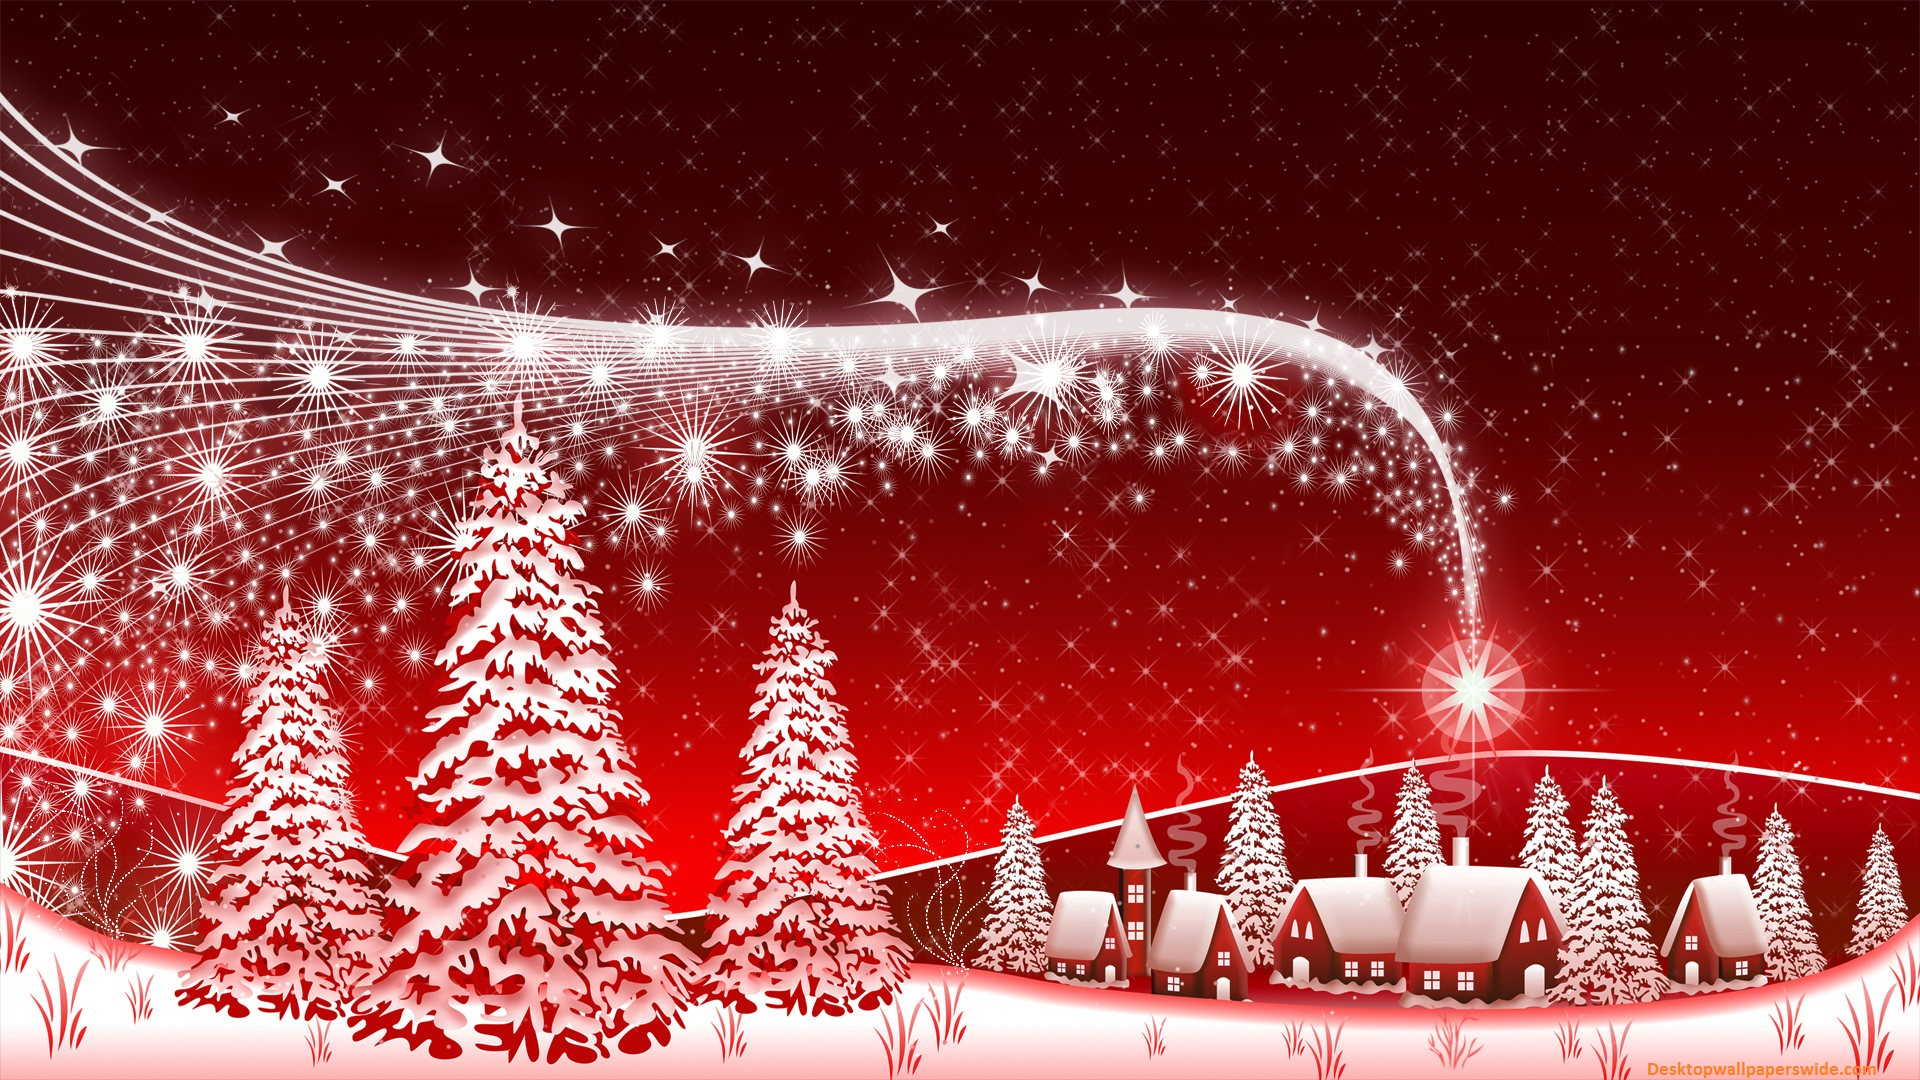 wallpaper 05 merry christmas wallpaper 06 merry christmas wallpaper 07 1920x1080